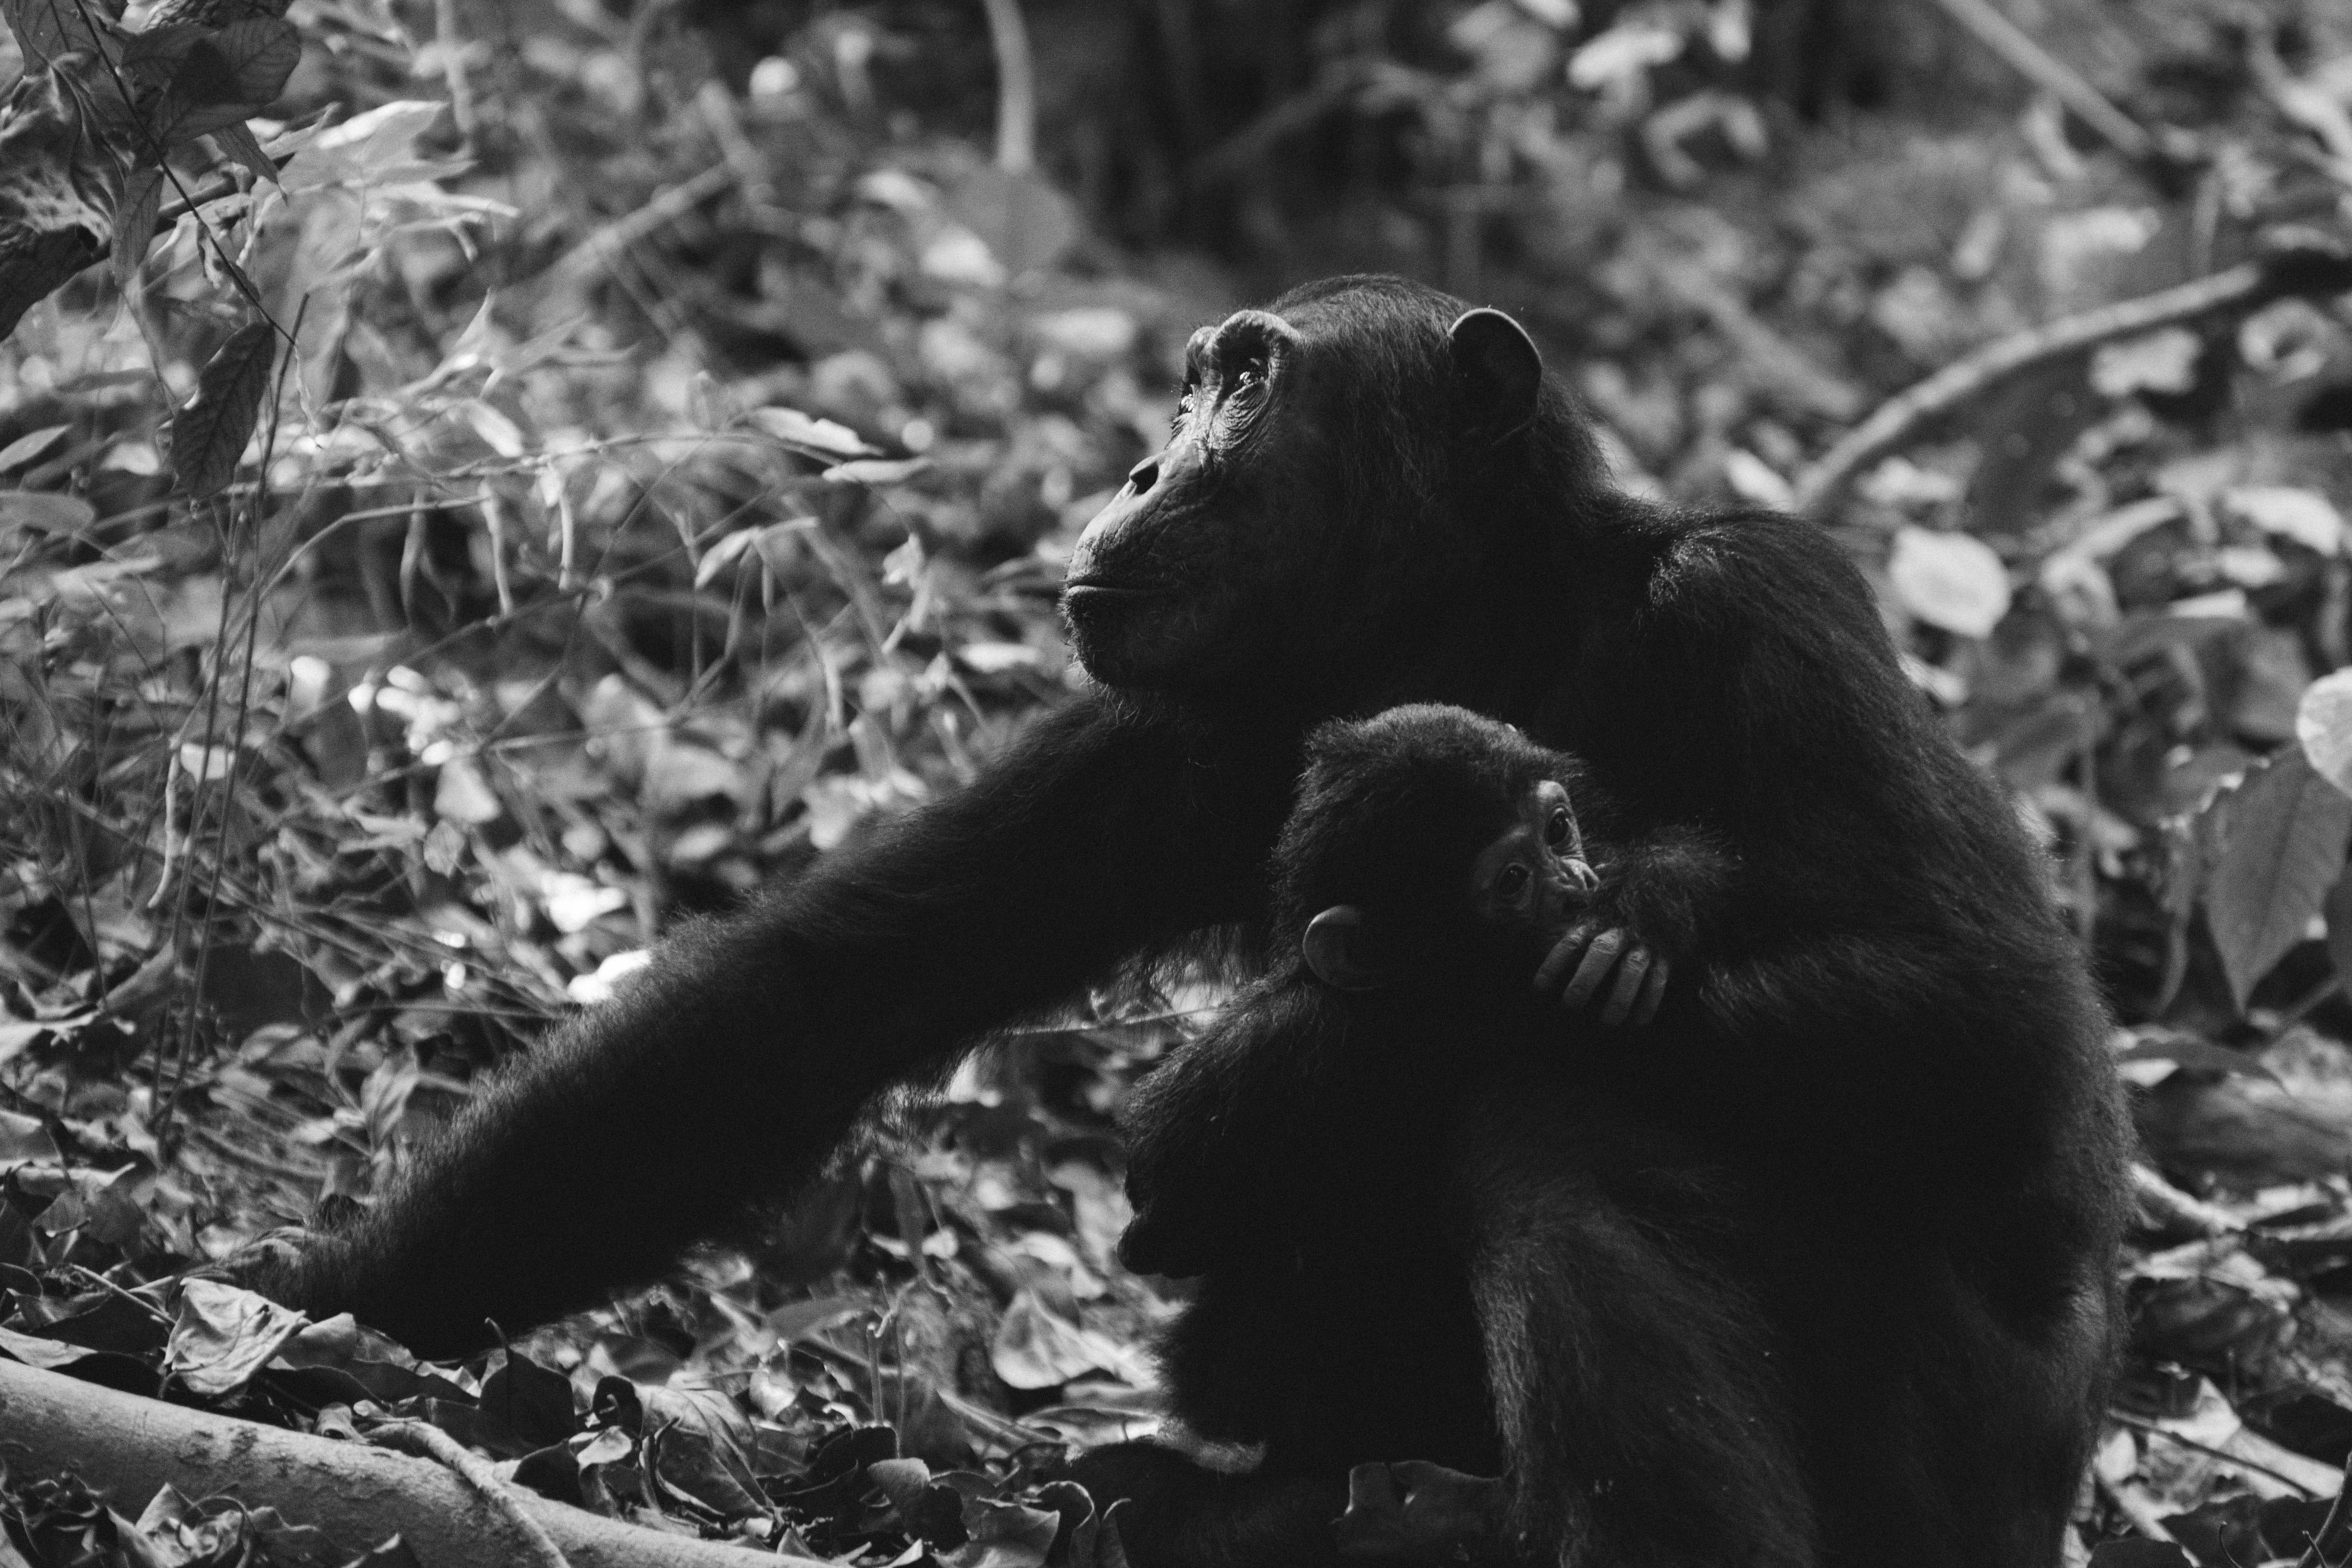 grayscale photo of two monkeys